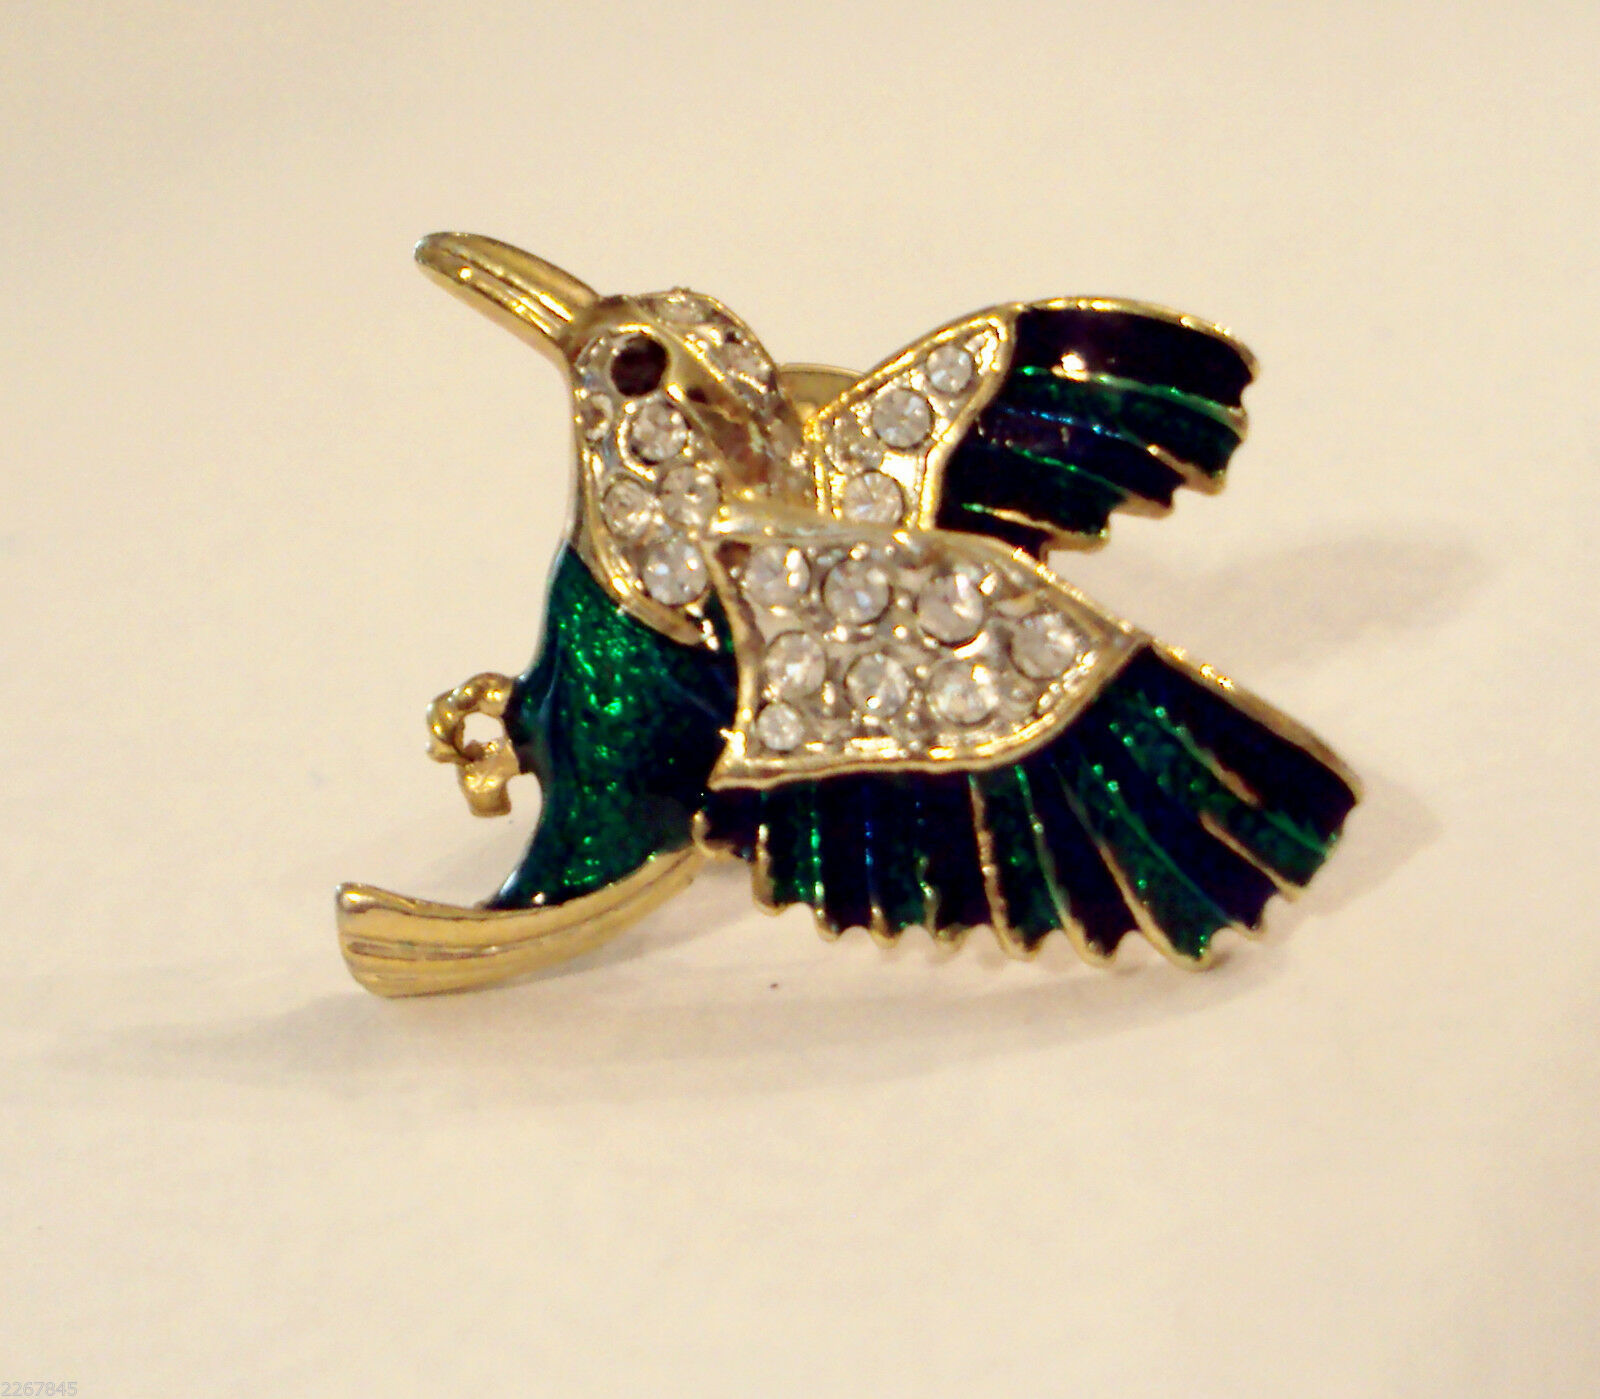 Primary image for Rhinestone Hummingbird Scatter Pin Green Enamel Gold Plated Lapel Brooch ✿ VTG